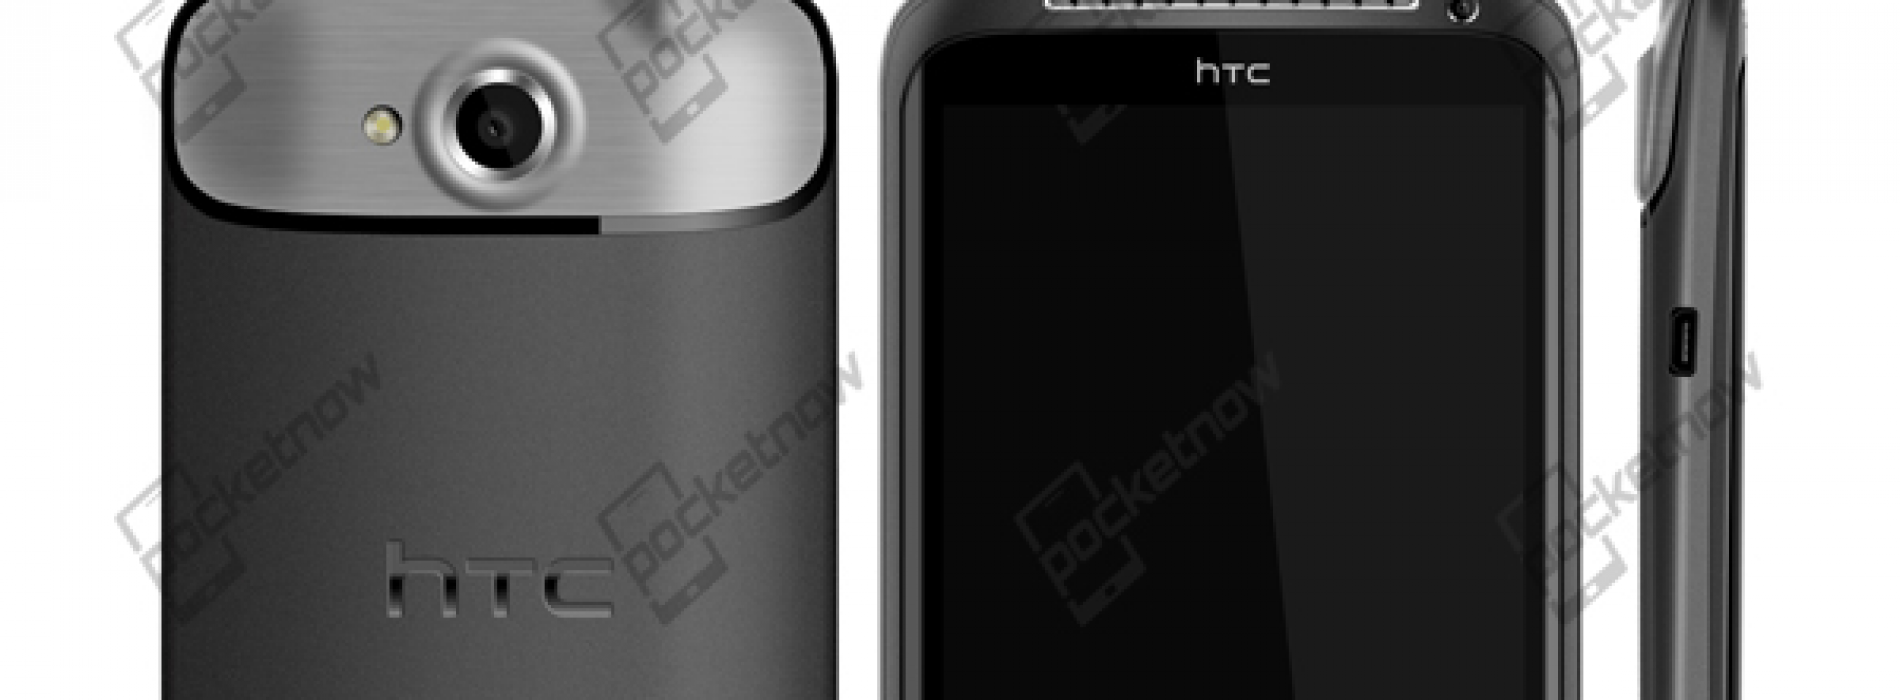 Finer details for HTC One X (Endeavor) come into light